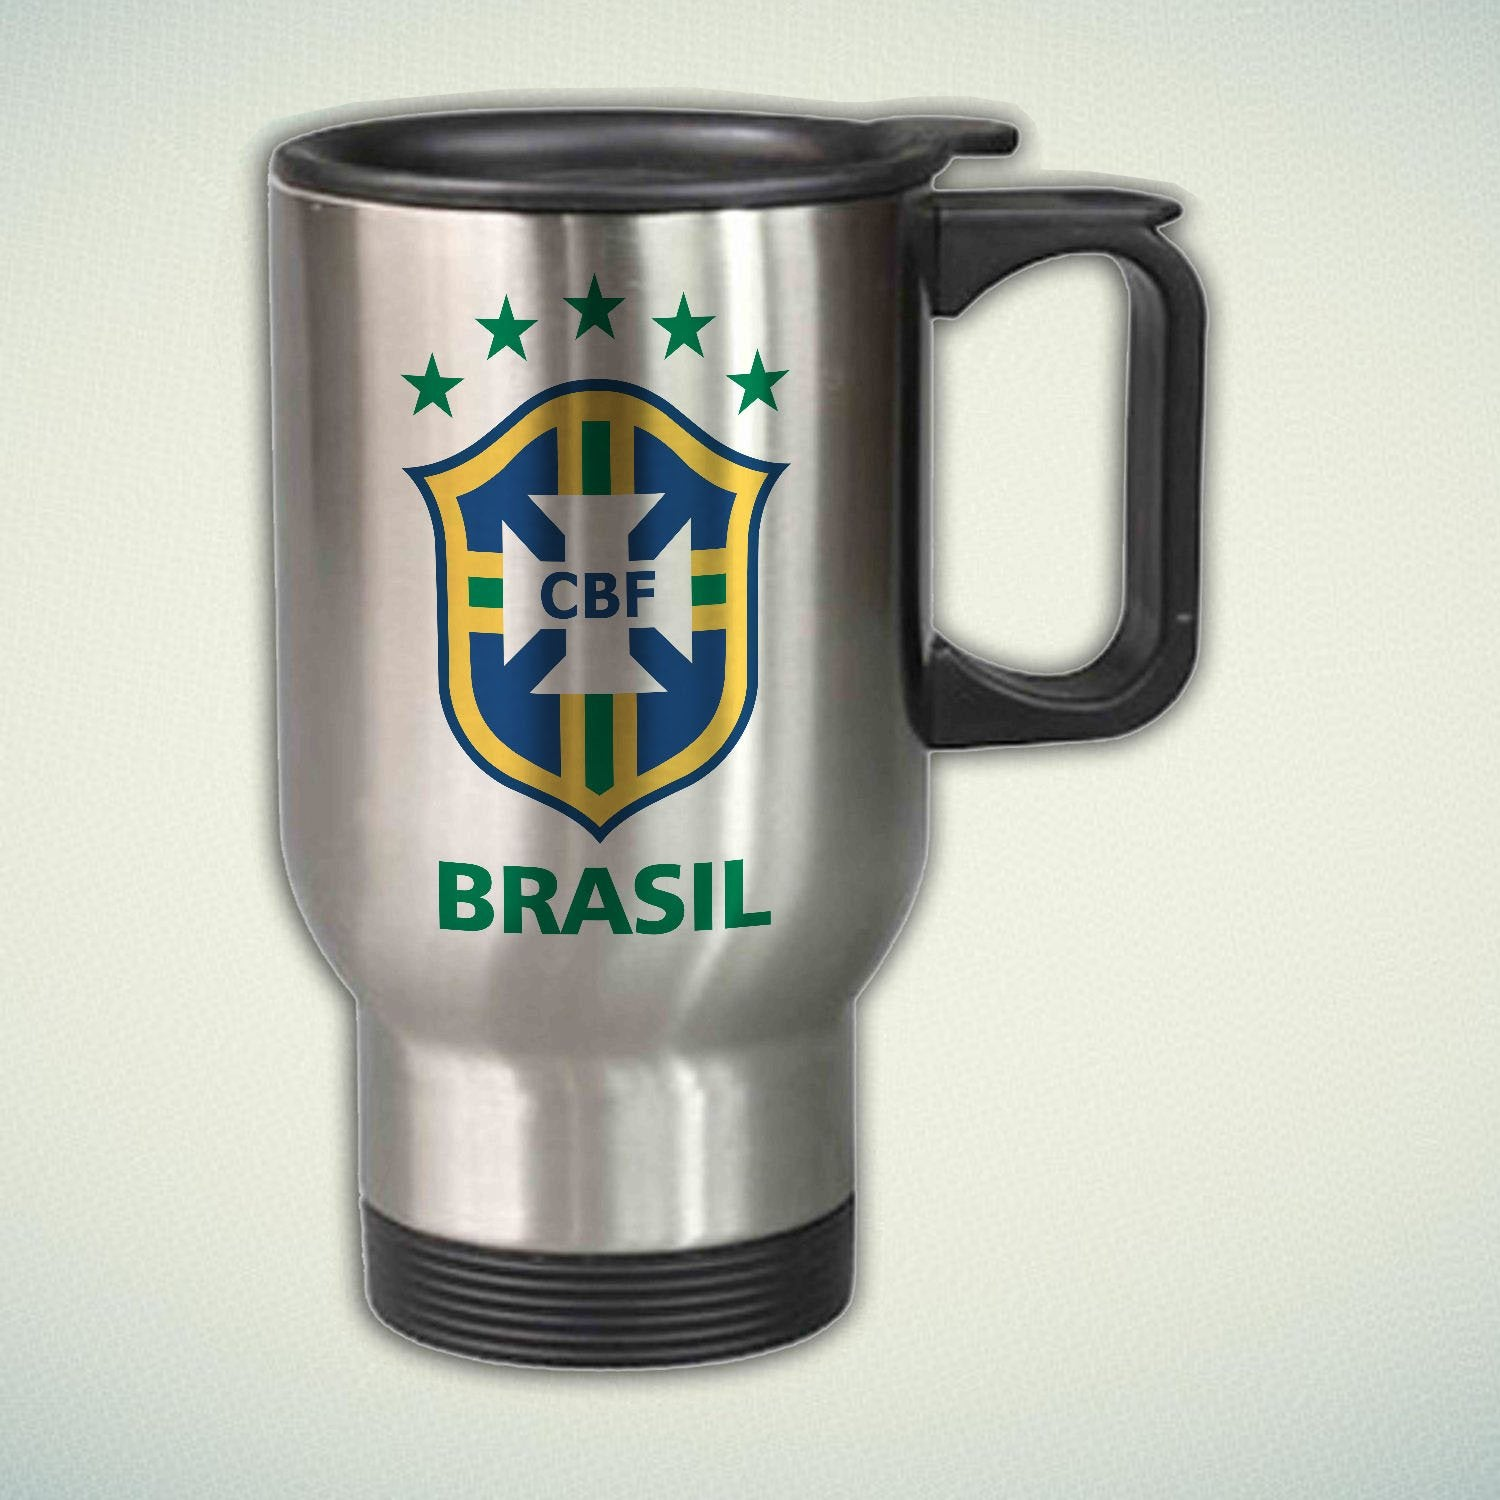 Brasil CBF Logo 14oz Stainless Steel Travel Mug